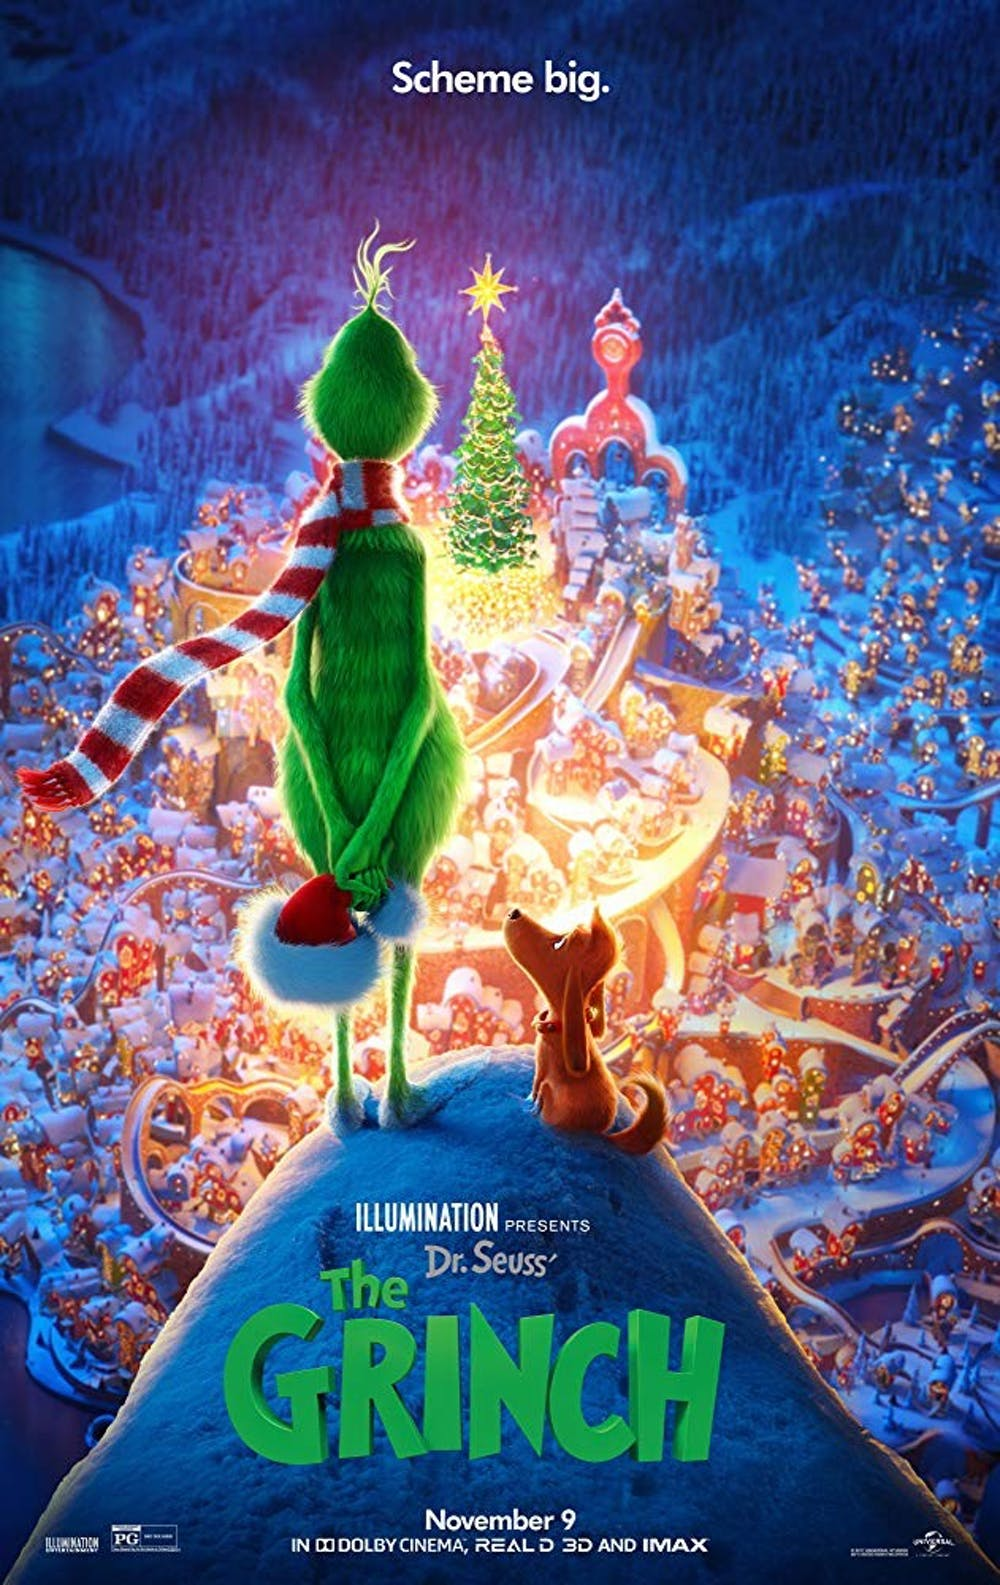 ae-thegrinch2018-courtesyuniversalpictures